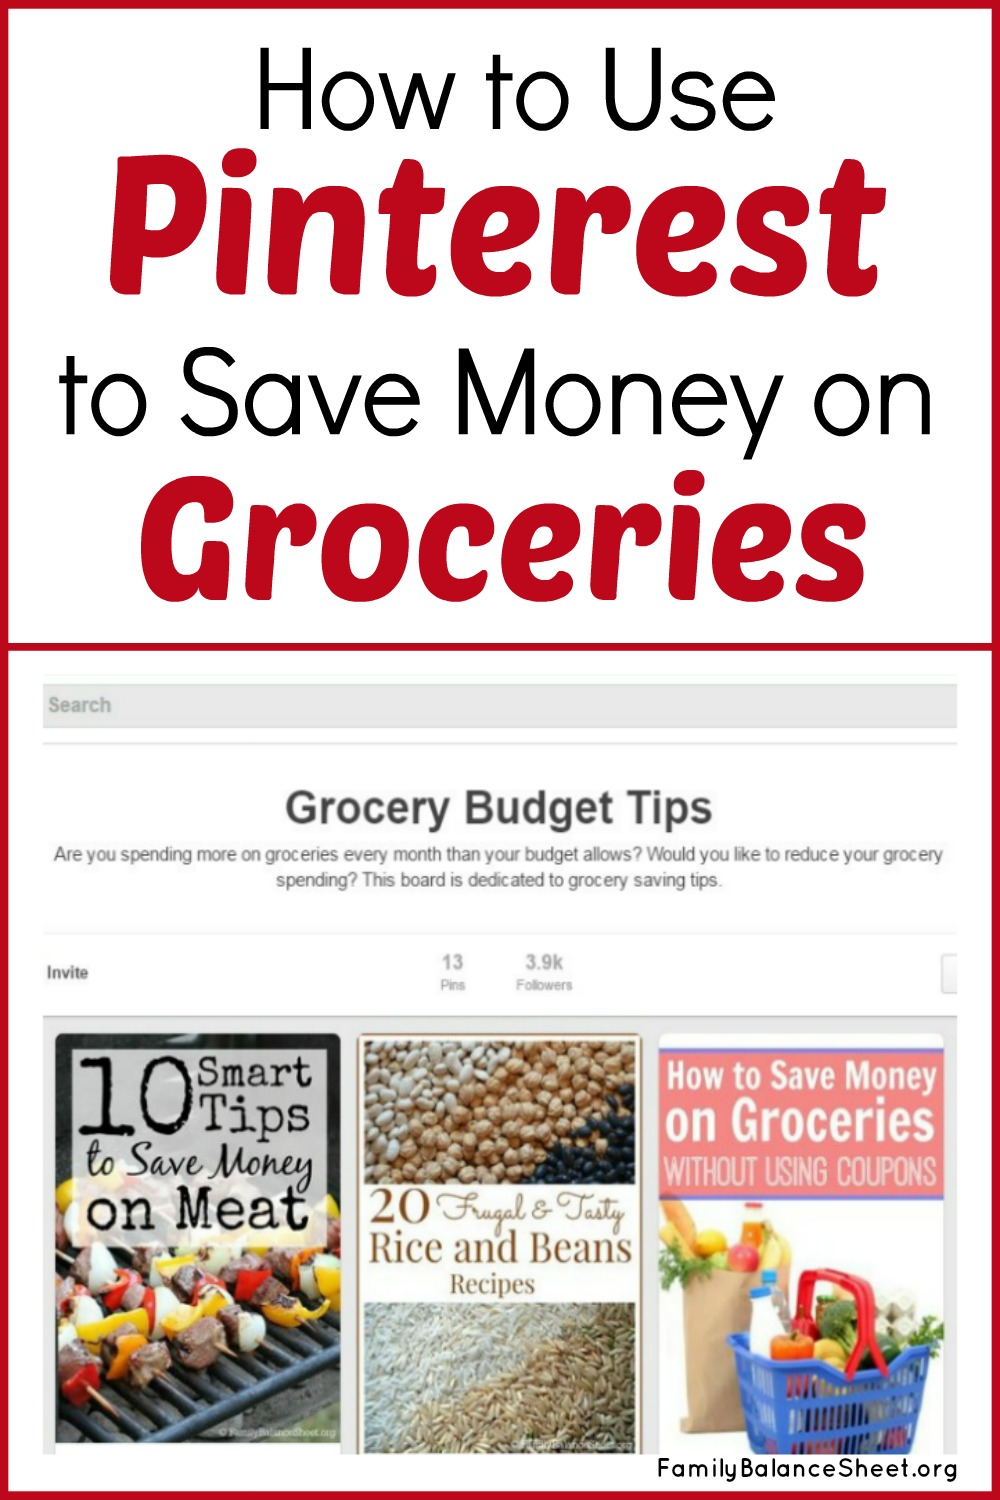 How to Use Pinterest to Save Money on Groceries